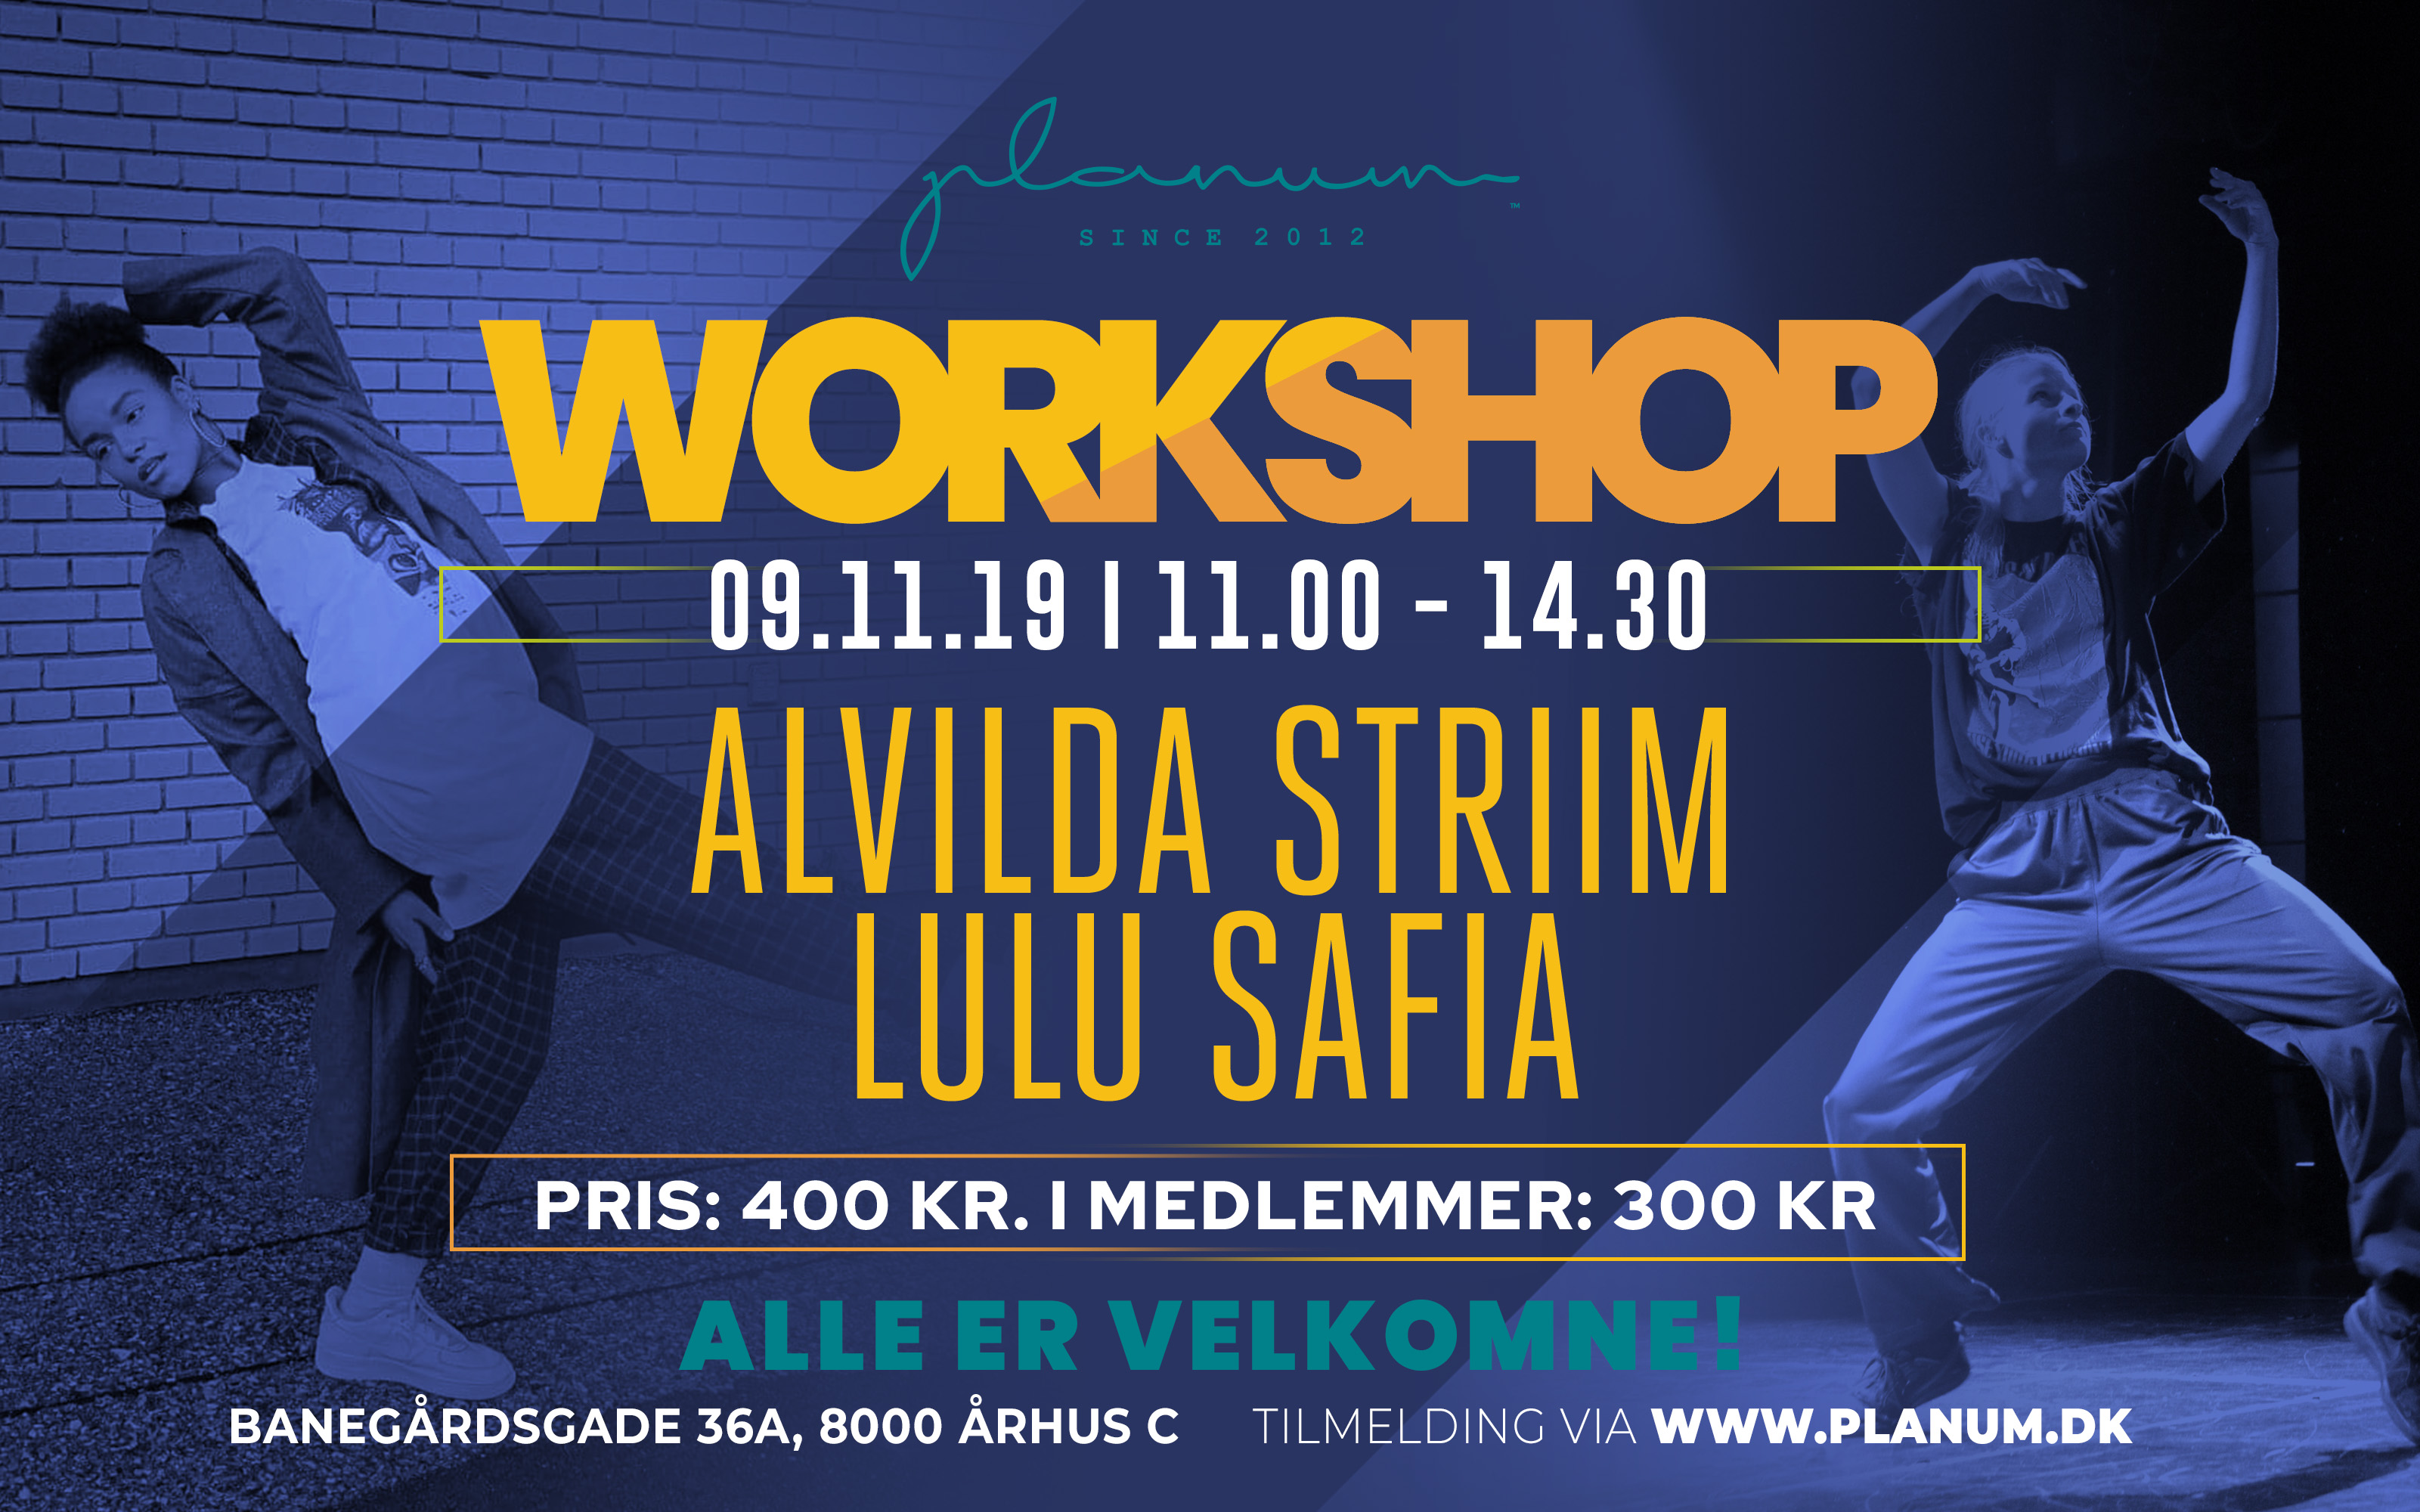 Workshop Lulu Safia x Alvilda Striim